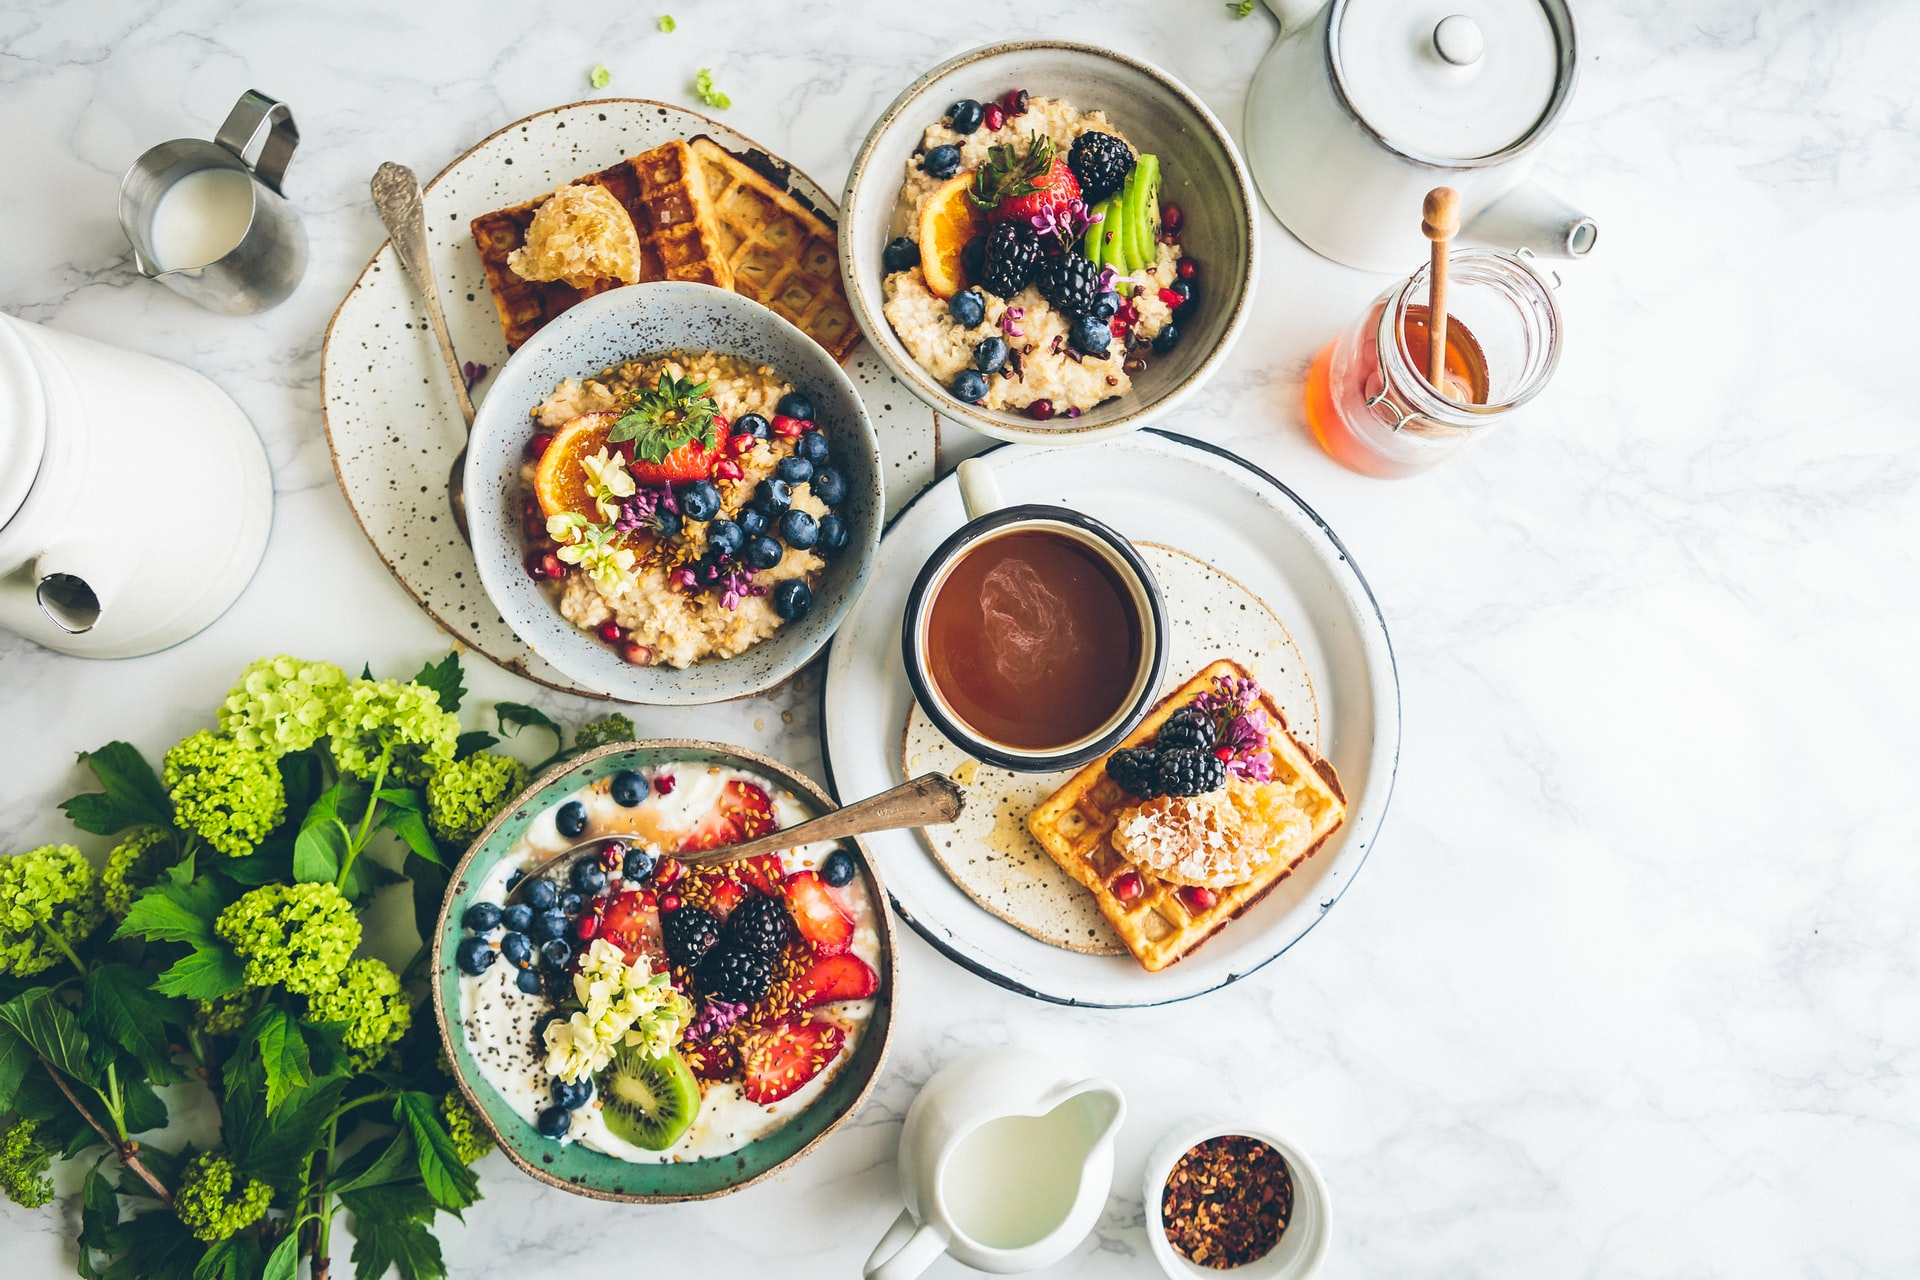 The Best Spots in NYC for Brunch, According to Caroline from Friendspire